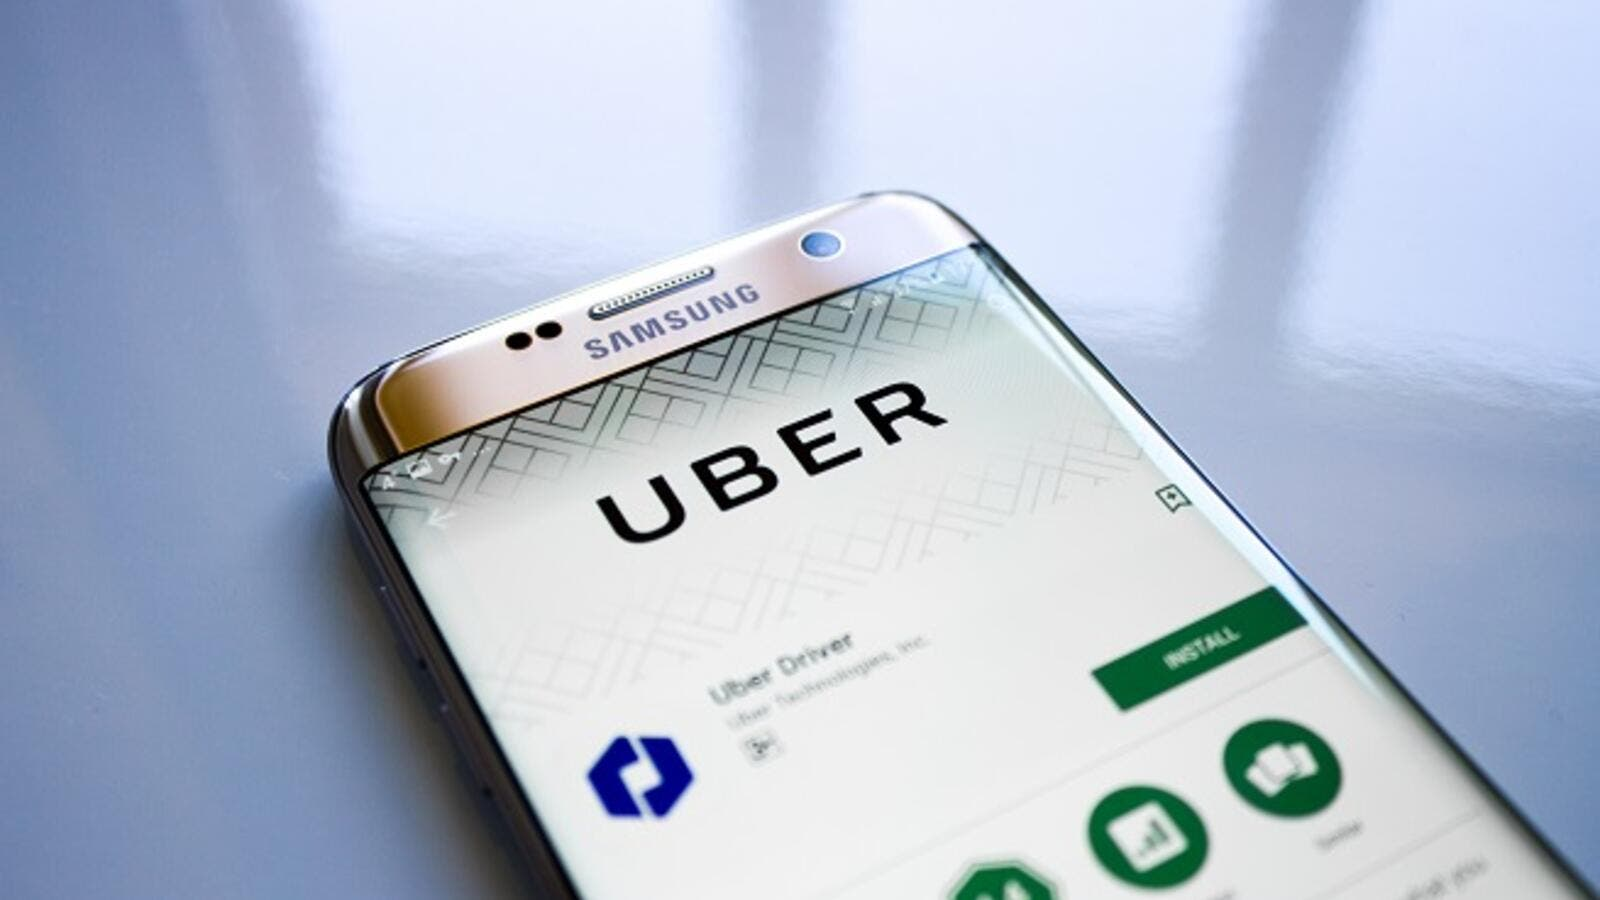 In May, Careem announced that it is currently in talks with investors to raise $500 million in funding. (Shutterstock)